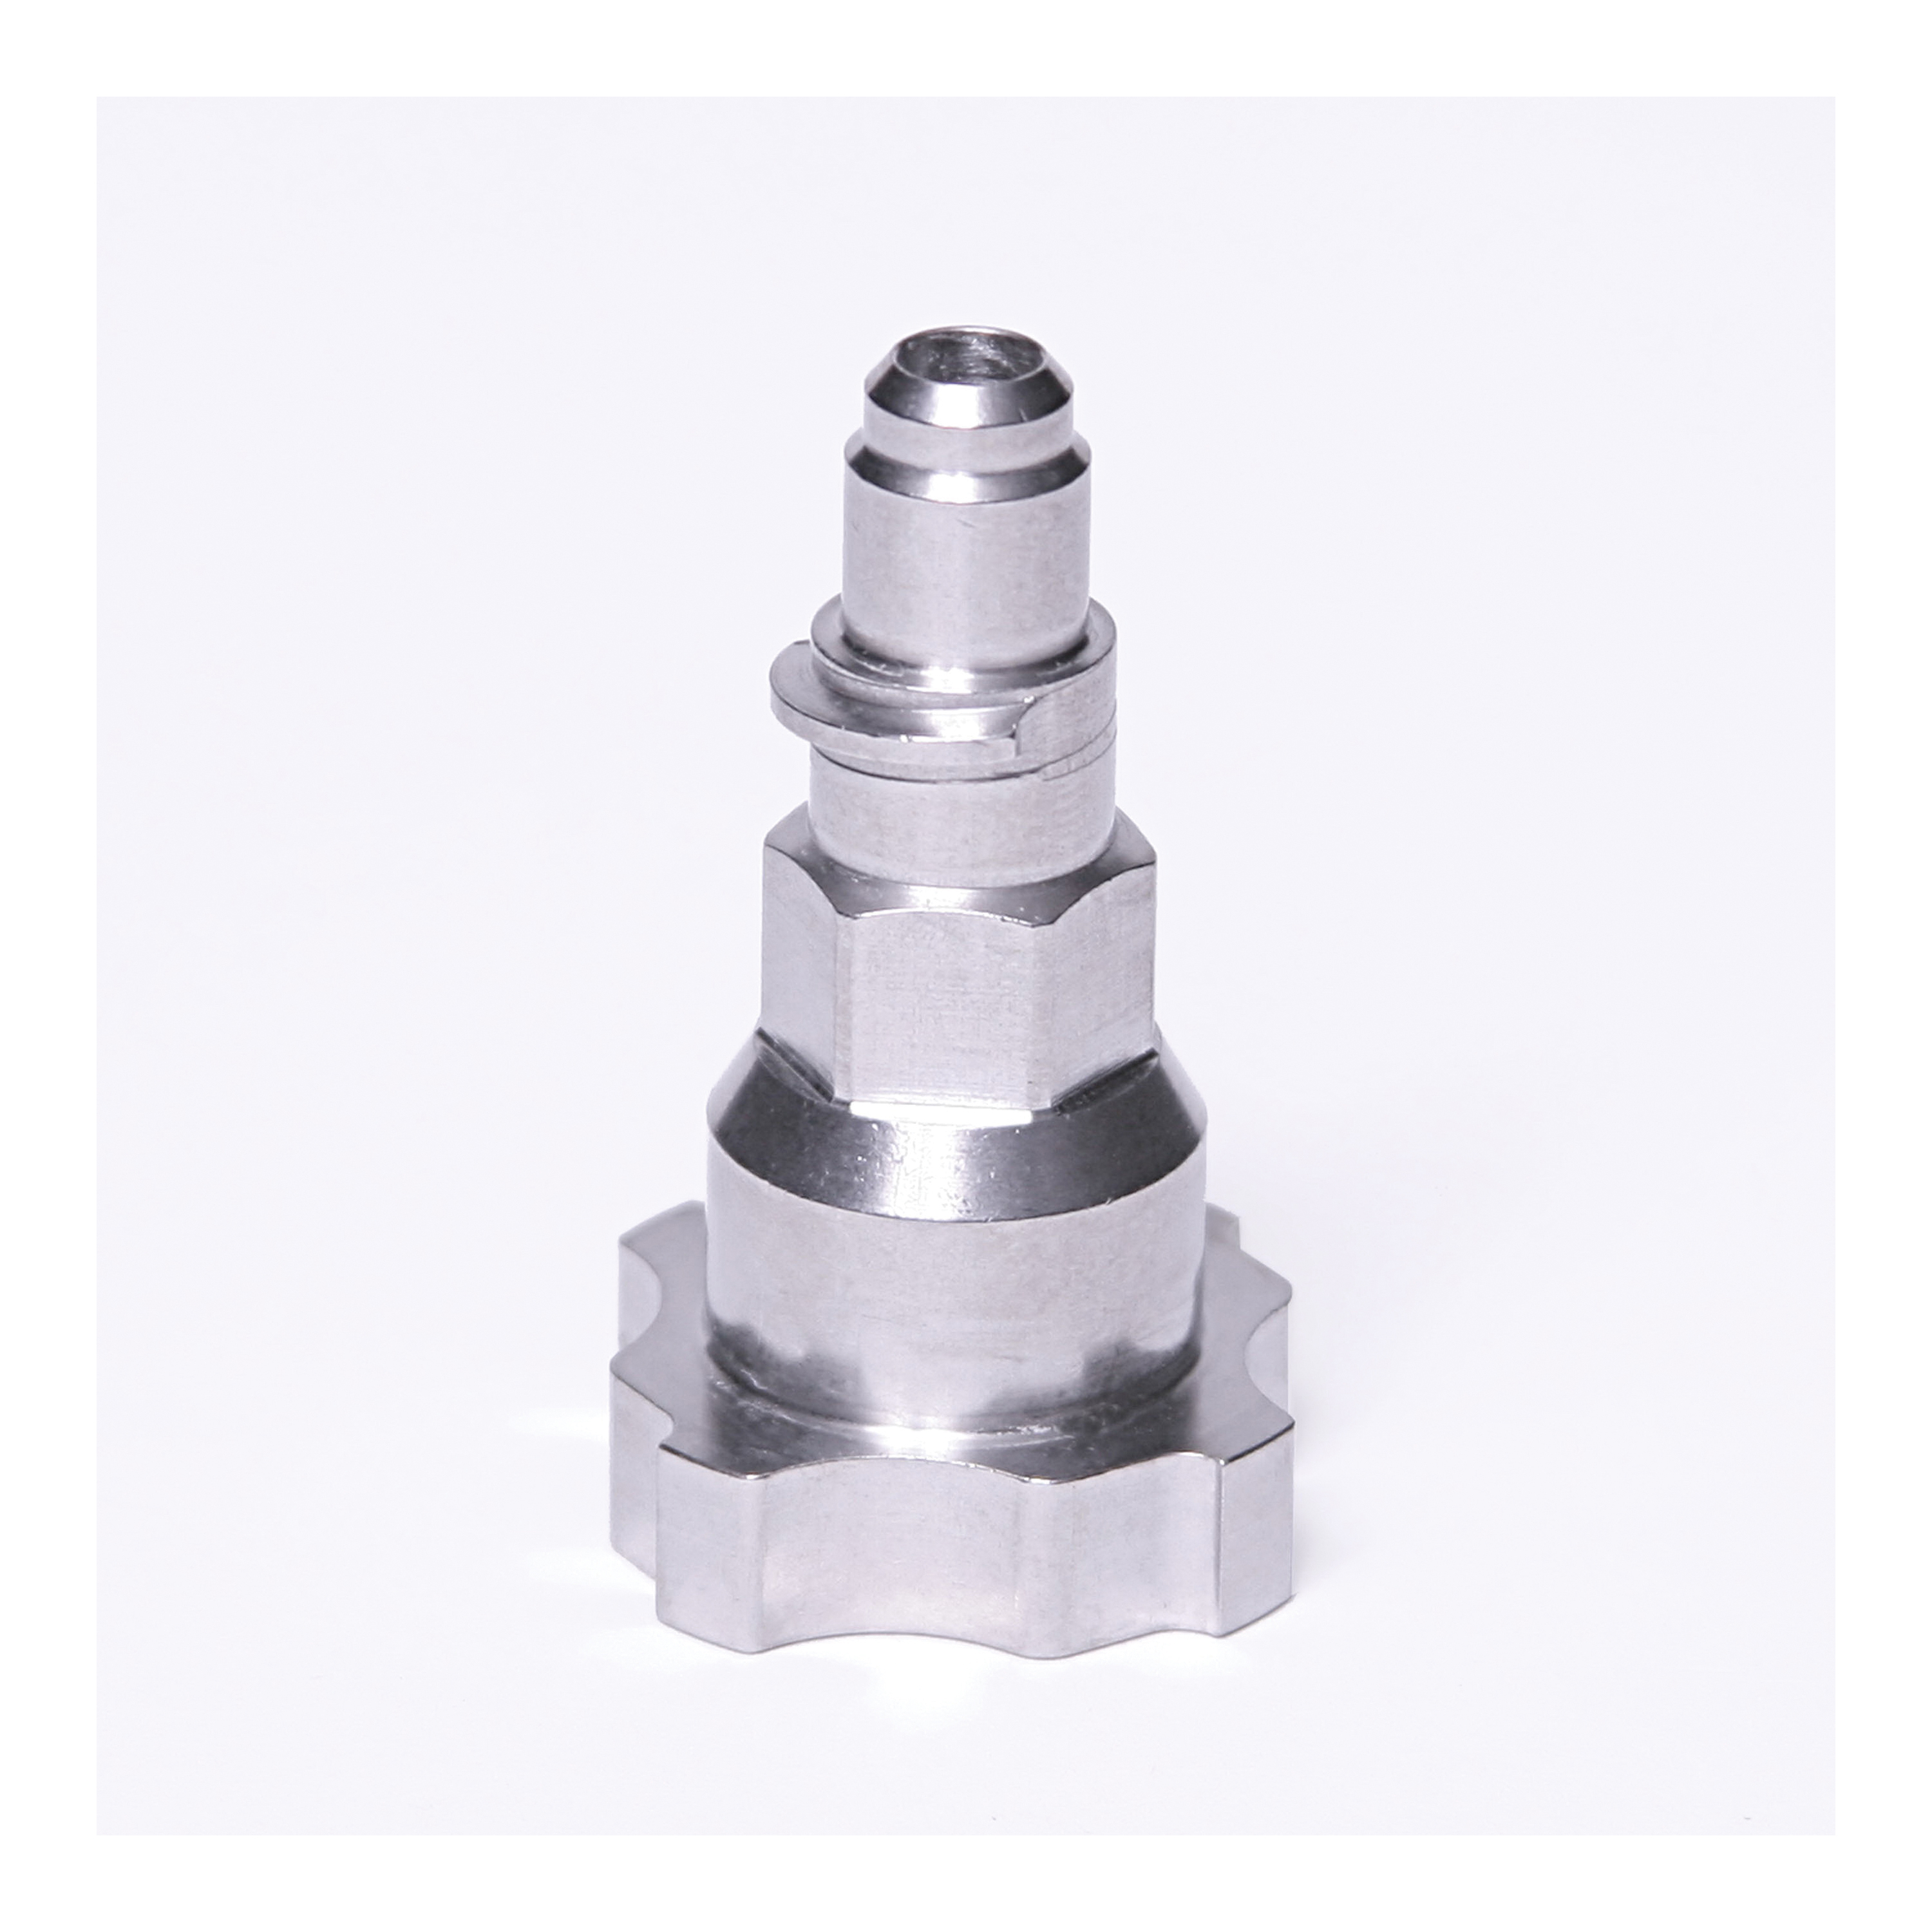 3M™ PPS™ 051131-16135 Type 40 Spray Adapter, For Use With 3M™ Paint Preparation System, Stainless Steel